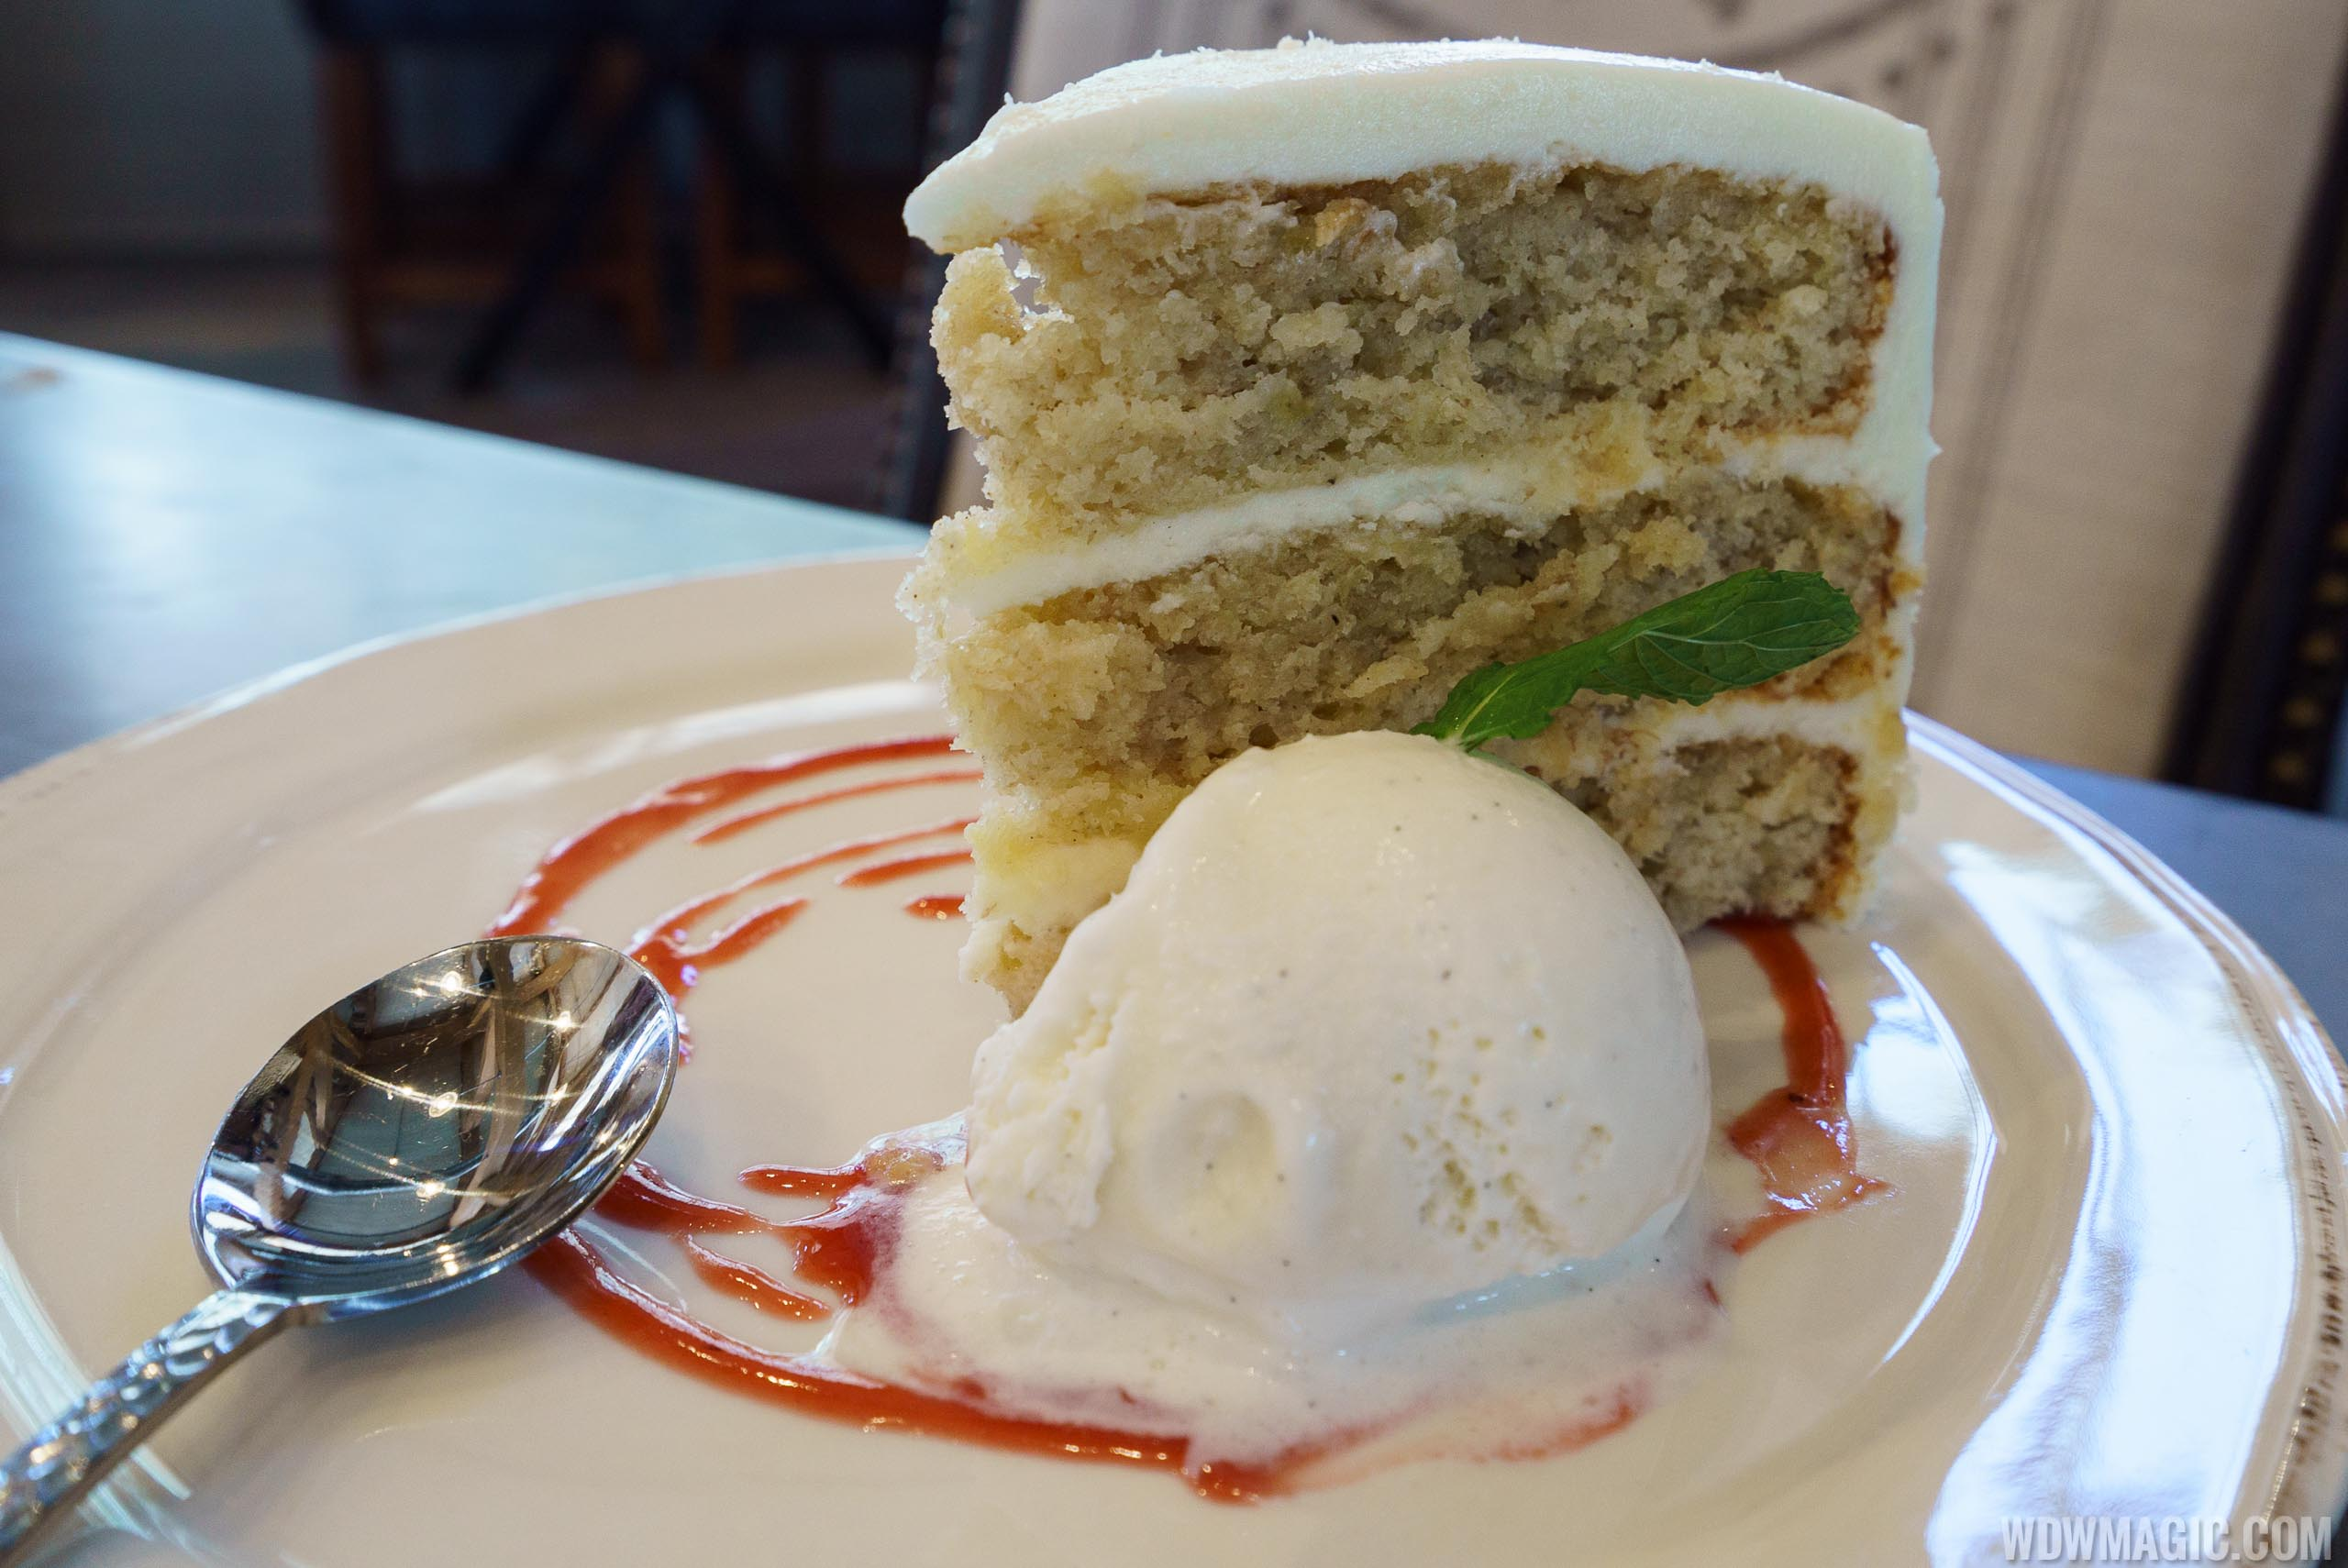 Homecoming restaurant - Hummingbird Cake